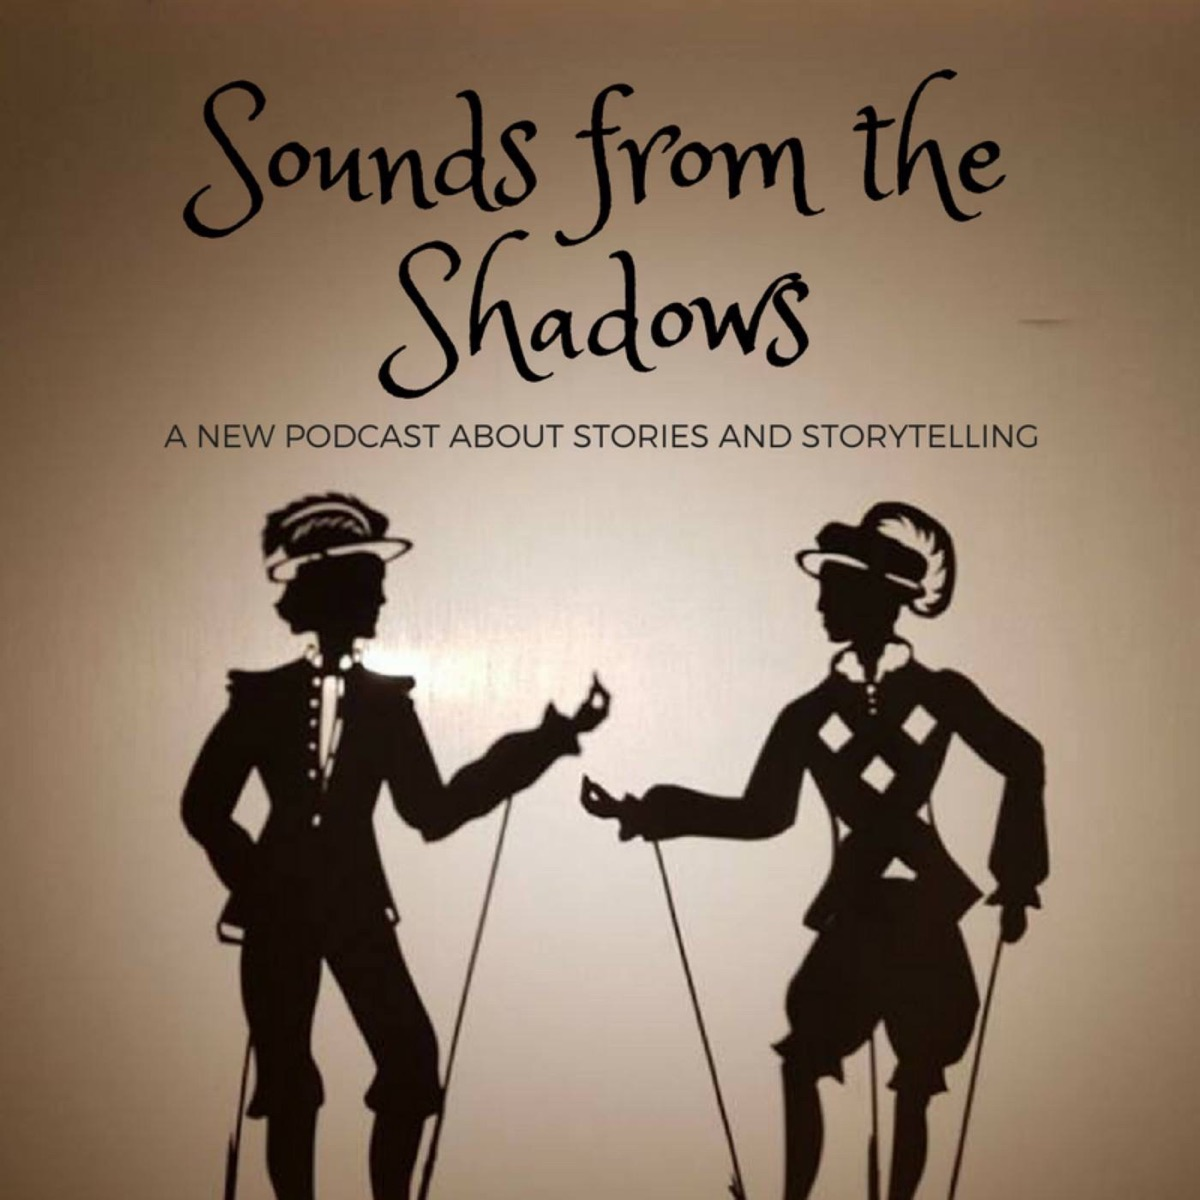 Sounds from the Shadows